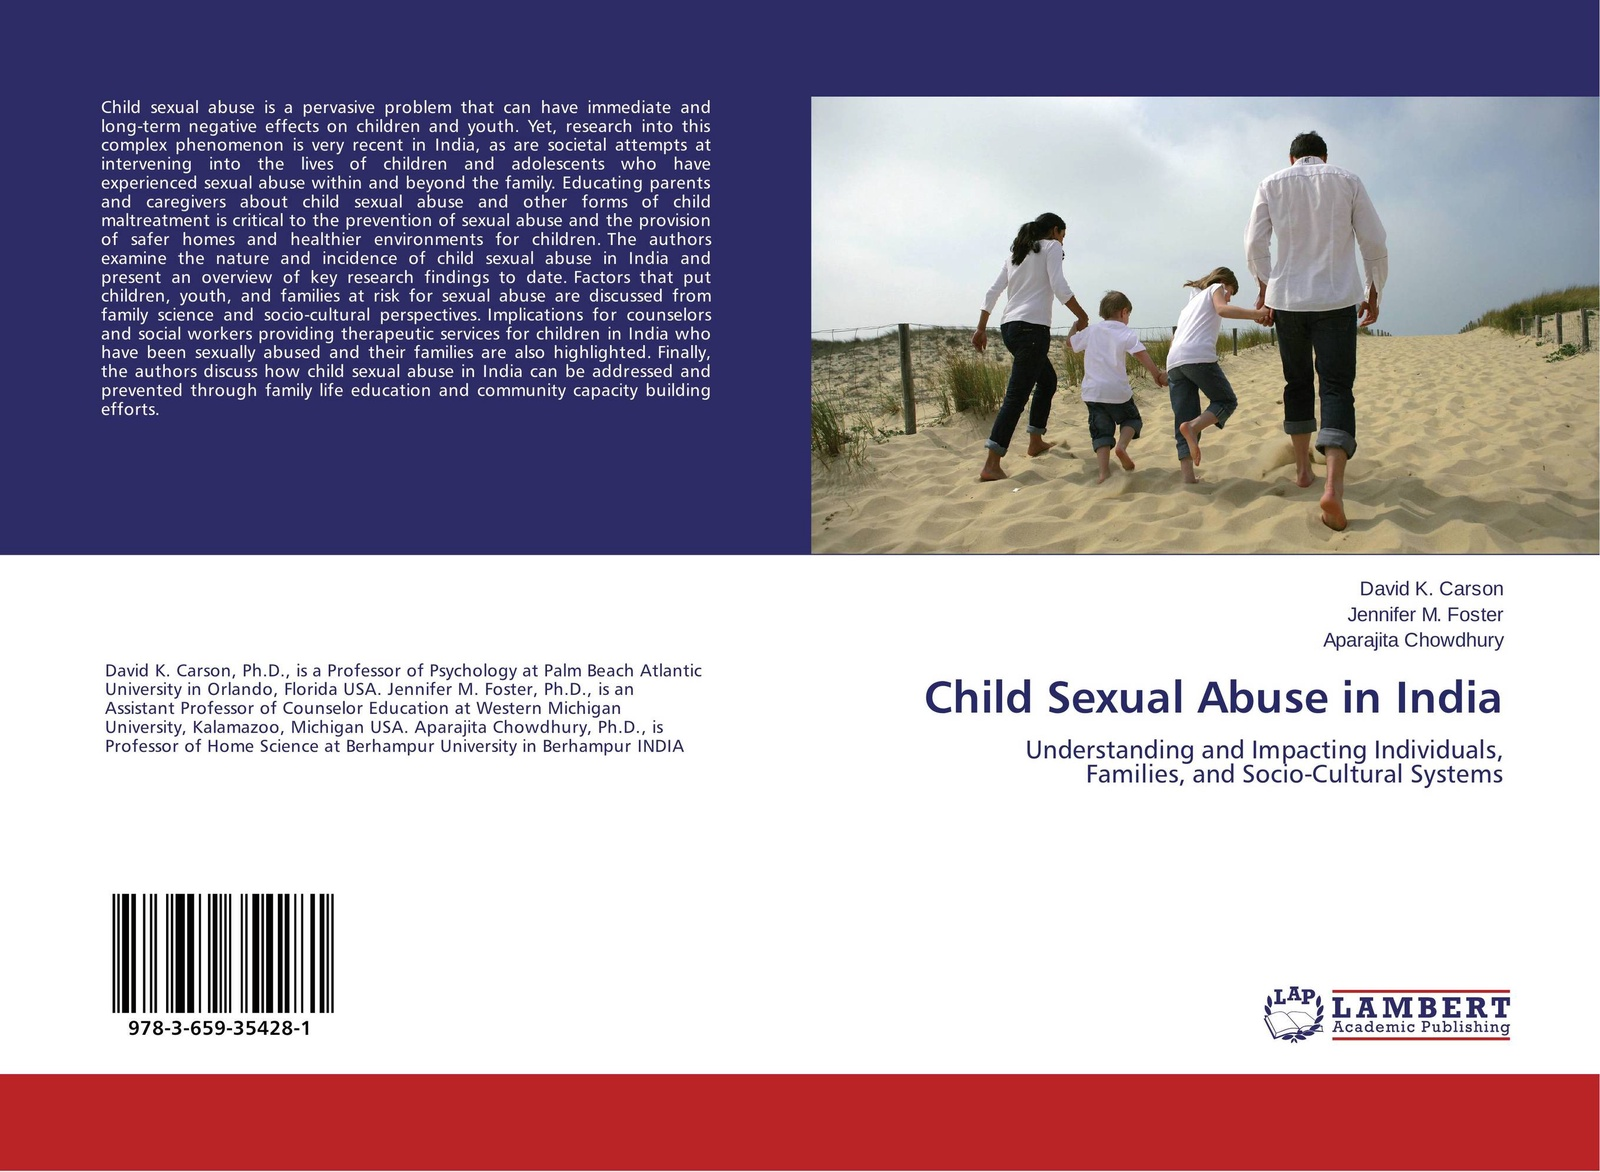 David K. Carson,Jennifer M. Foster and Aparajita Chowdhury Child Sexual Abuse in India paris goodyear brown handbook of child sexual abuse identification assessment and treatment